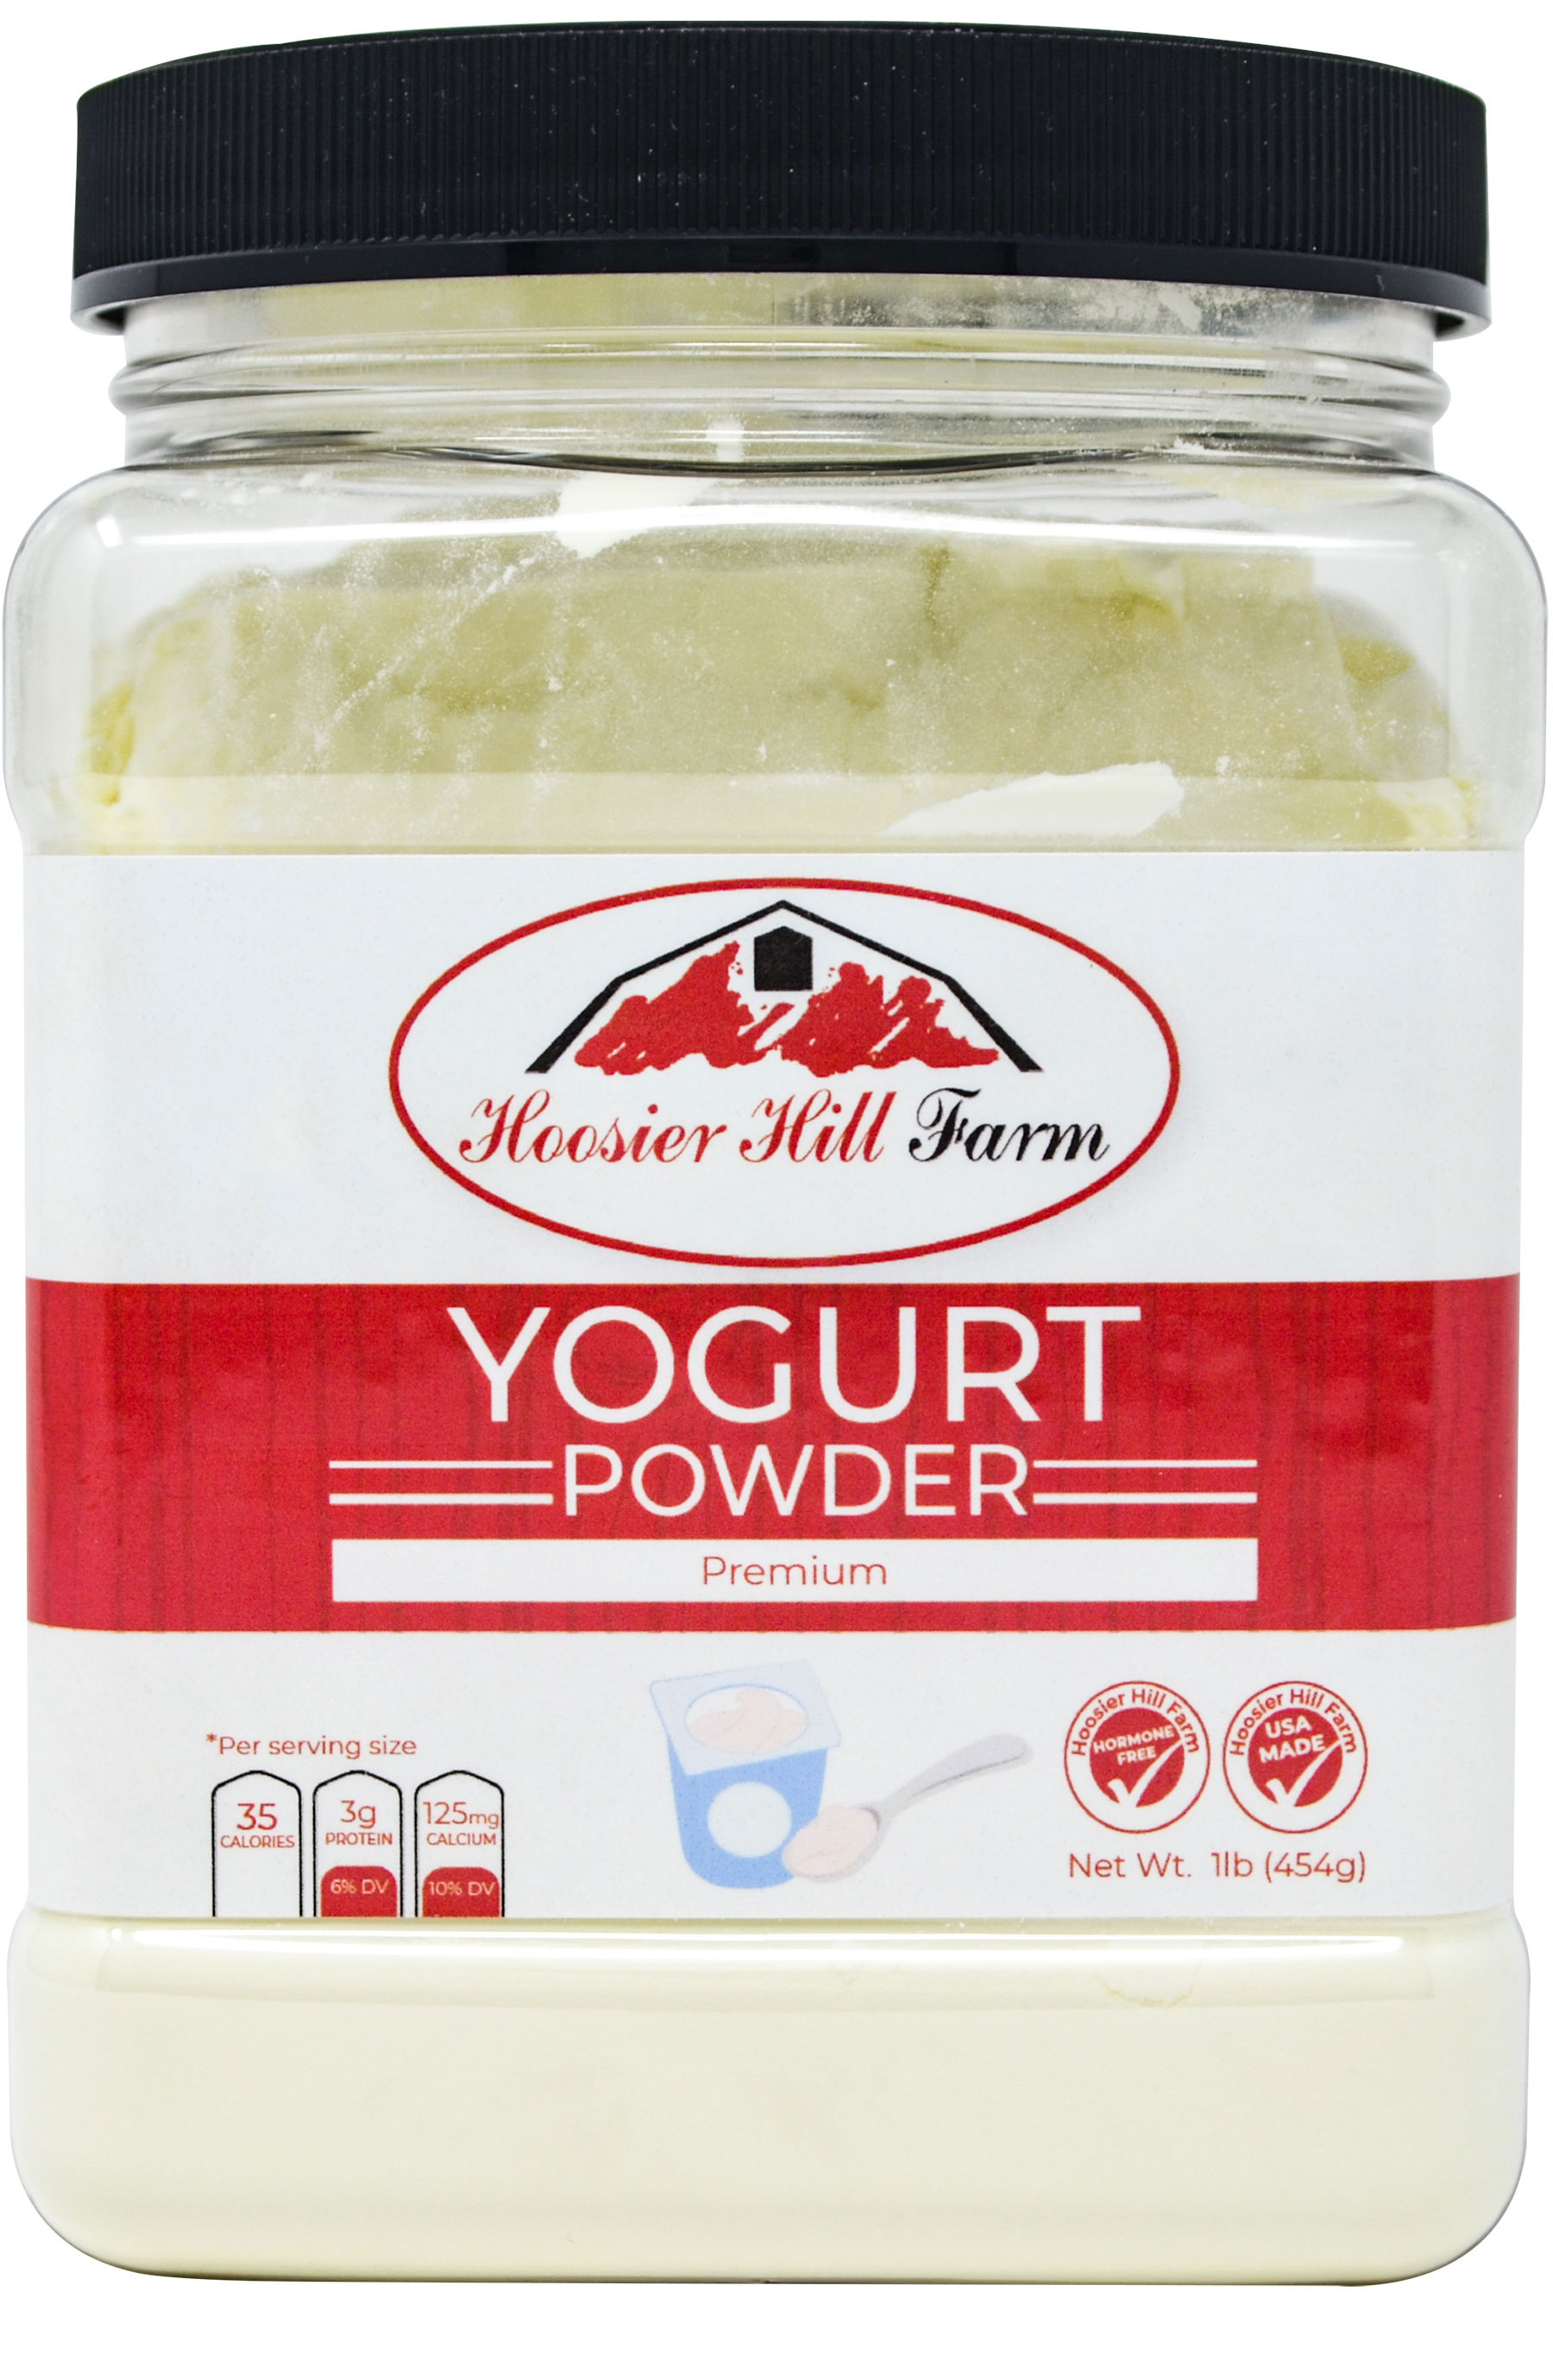 Premium Yogurt Powder by Hoosier Hill Farm 1 lb